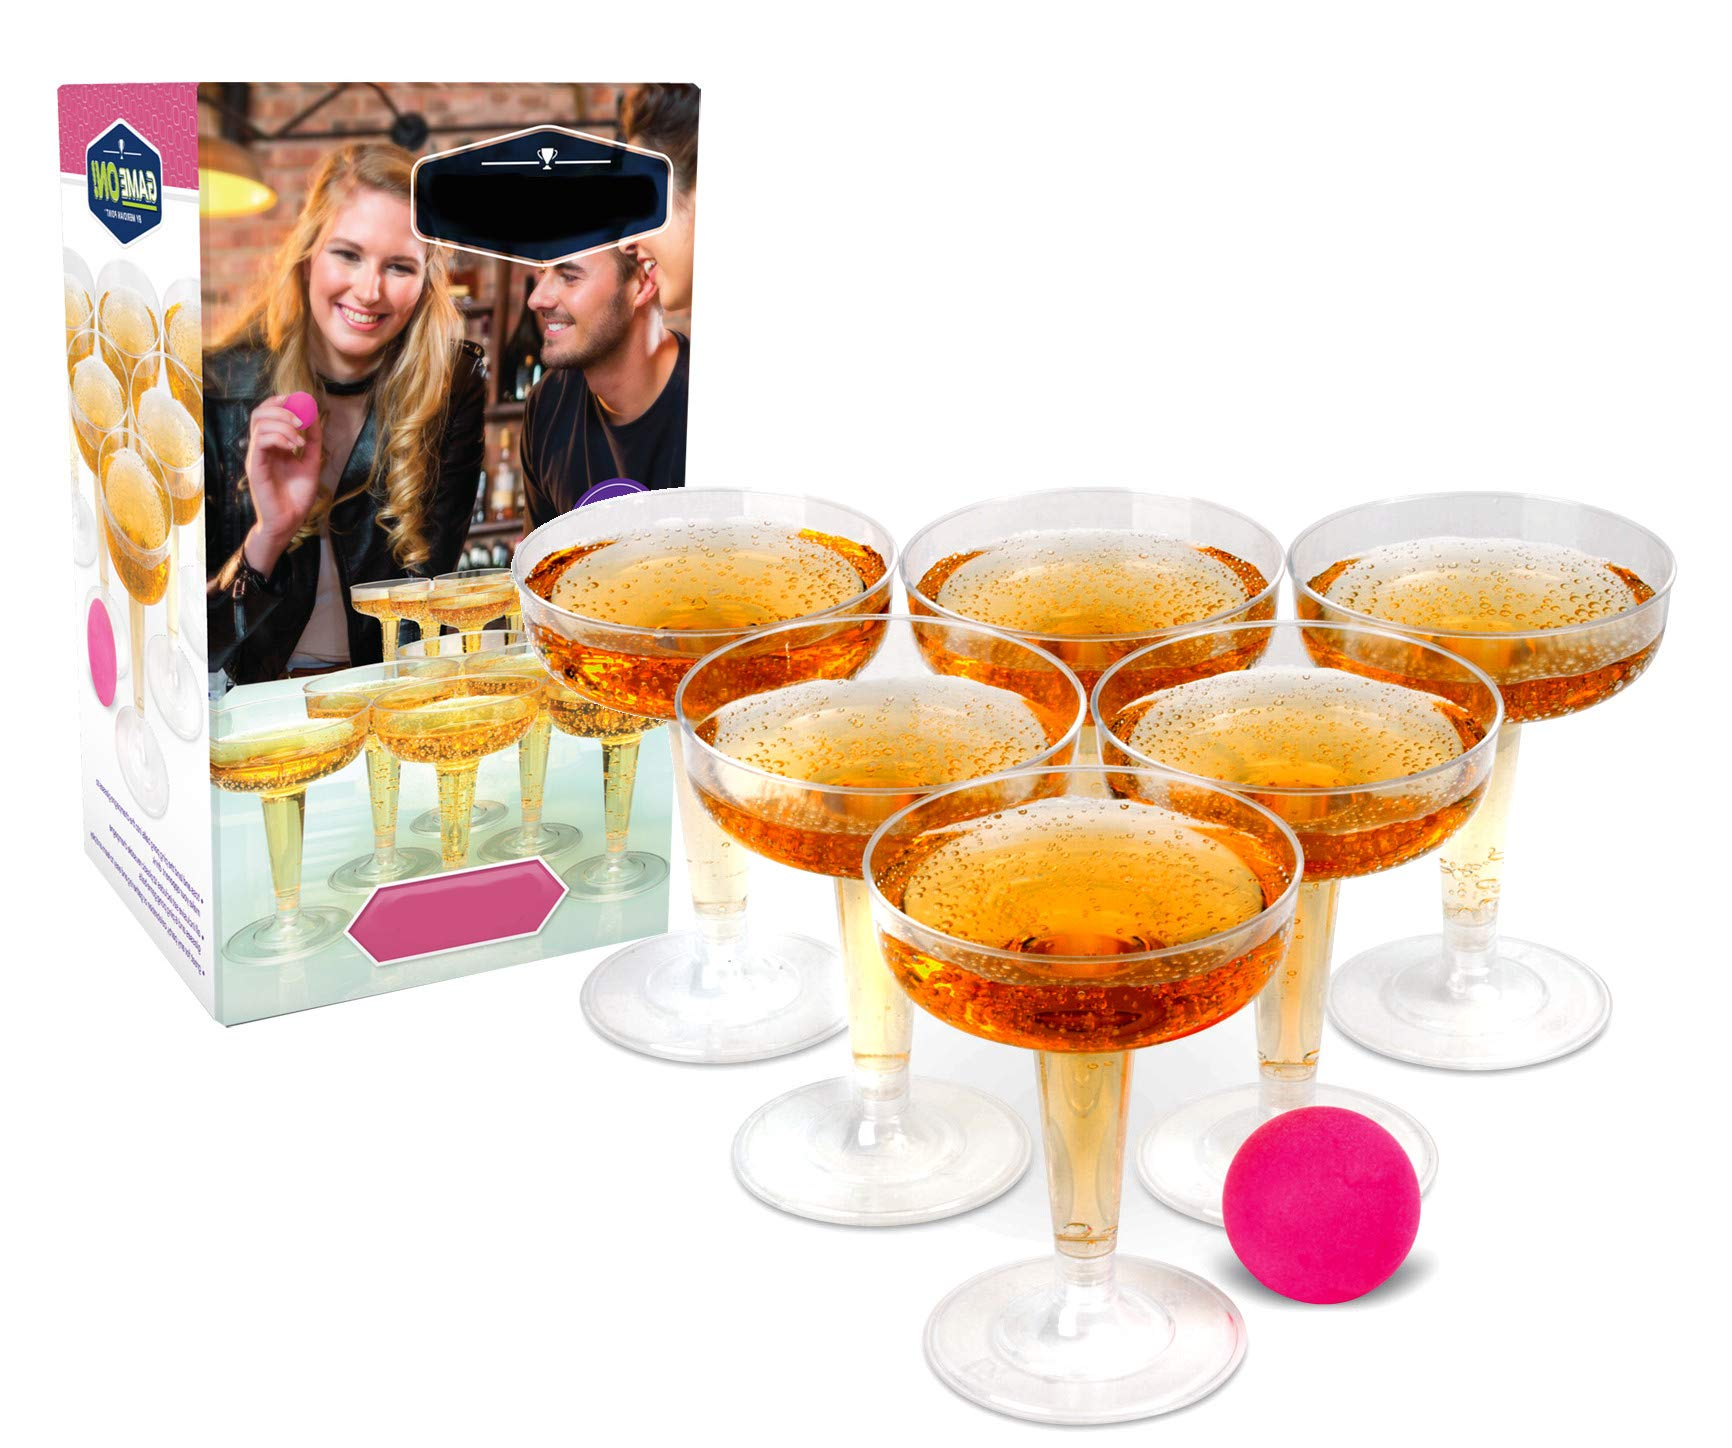 Ideas In Life Champagne Pong Classic Party Drinking Game Set - Contains 12 Plastic Reusable Glasses and 6 Pink Pong Balls for Weddings, Parties and More by Ideas In Life